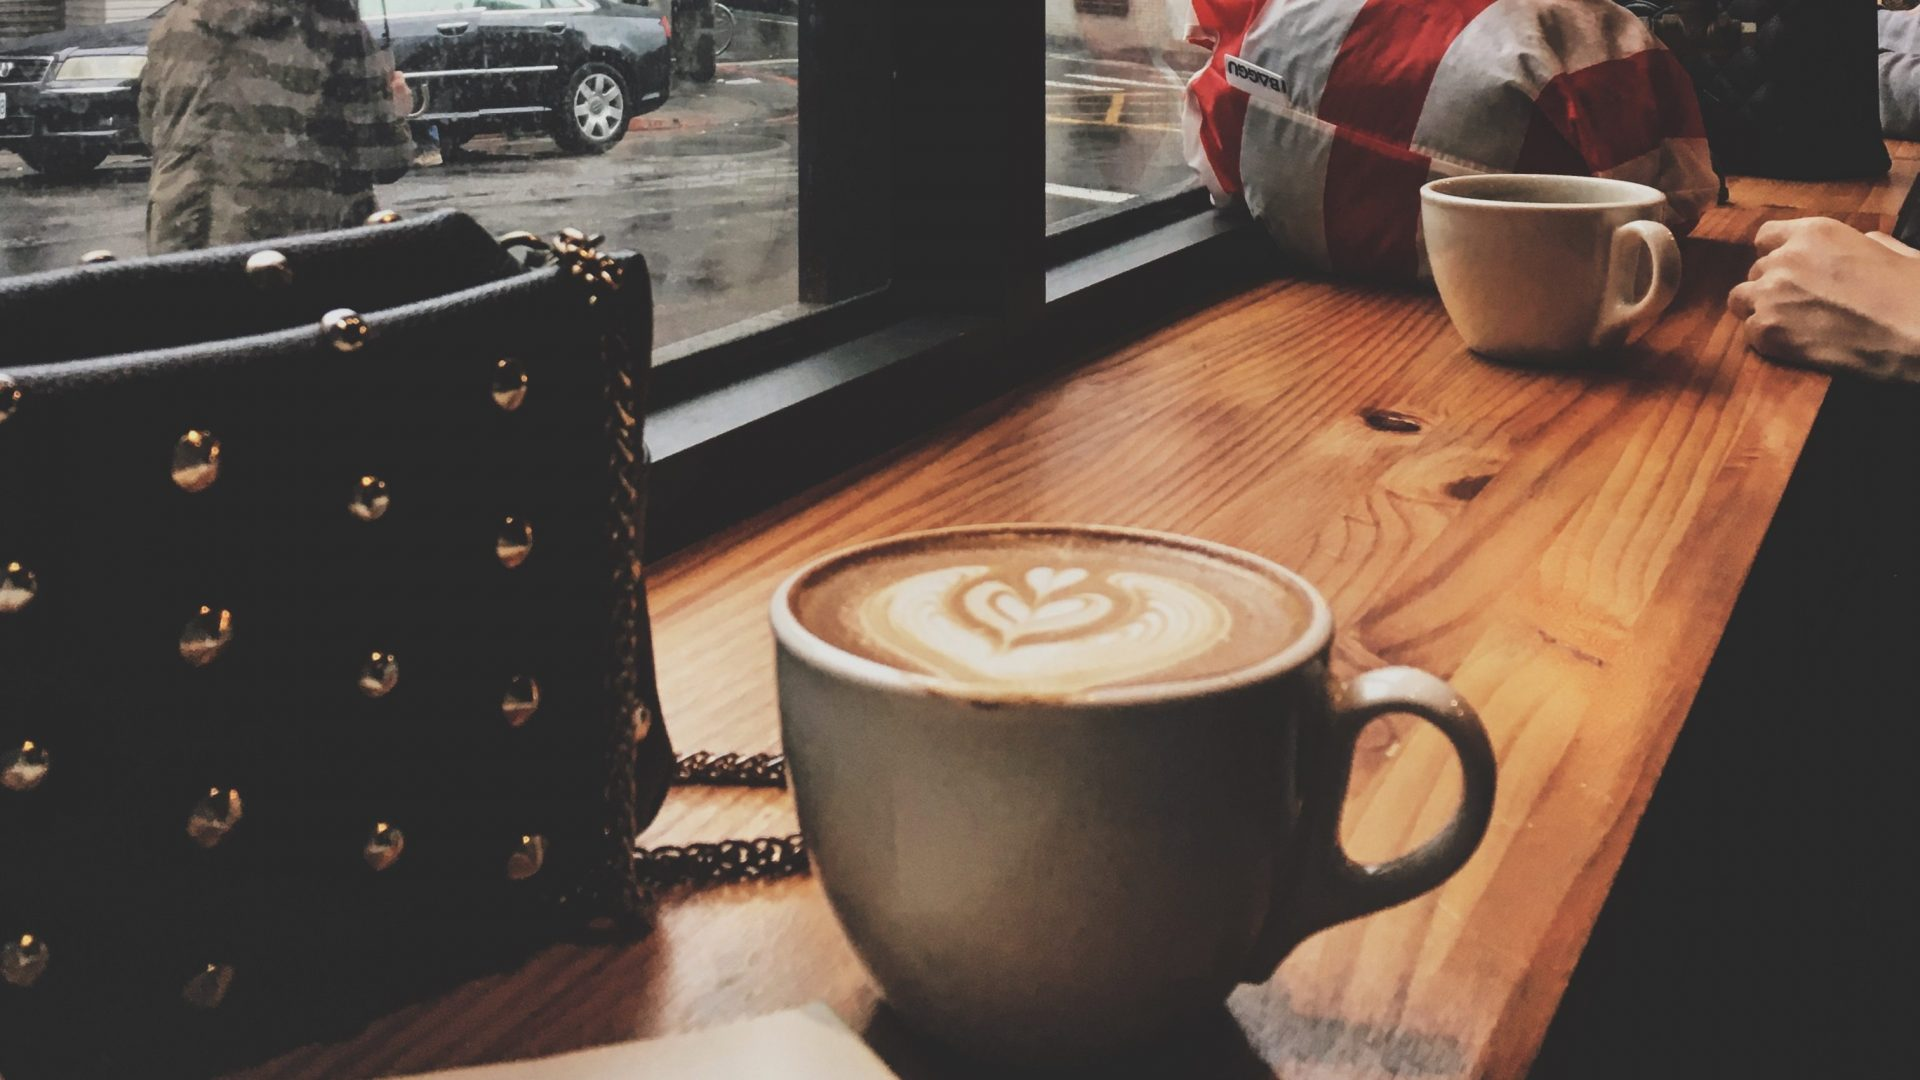 people watching with a cup of latte at Firewood Cafe in Taipei